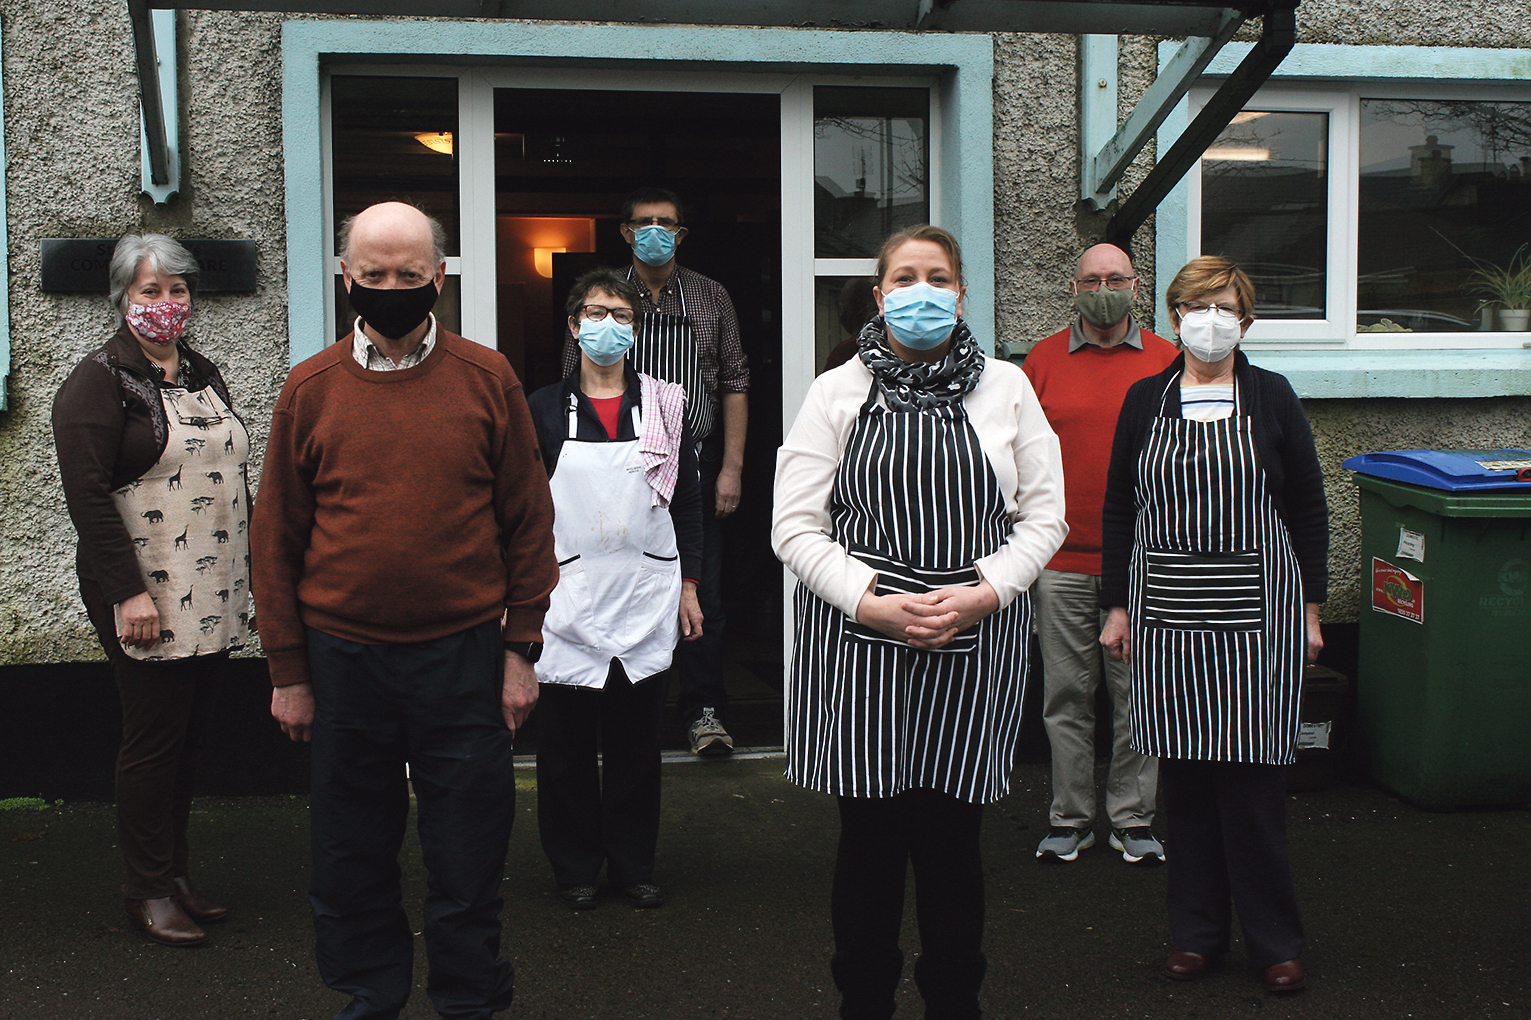 Clonakilty Meals on Wheels helps cocooners feel less isolated